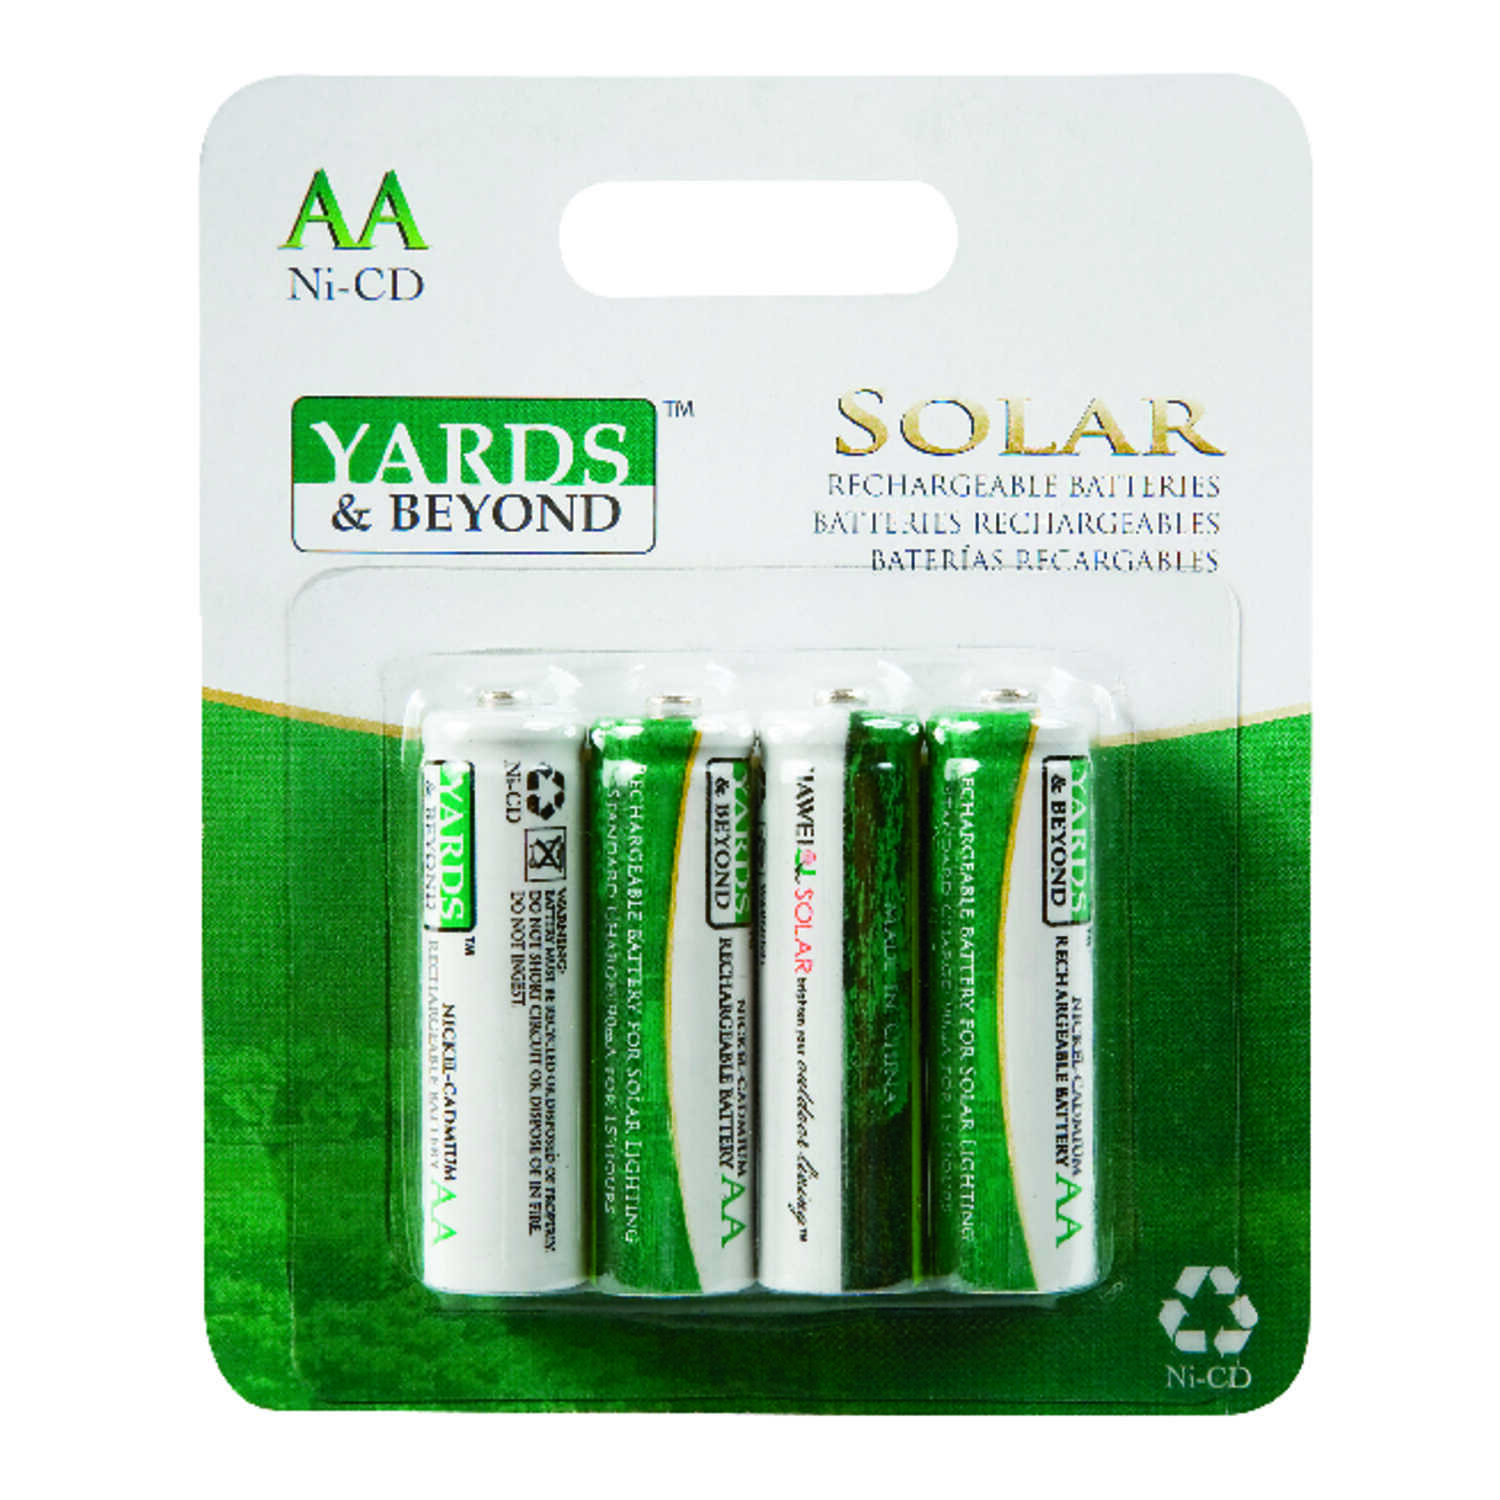 Living Accents Yards & Beyonds  Ni-Cad  AA  1.2 volt Solar Rechargeable Battery  BT-NC-AA-900-D4  4